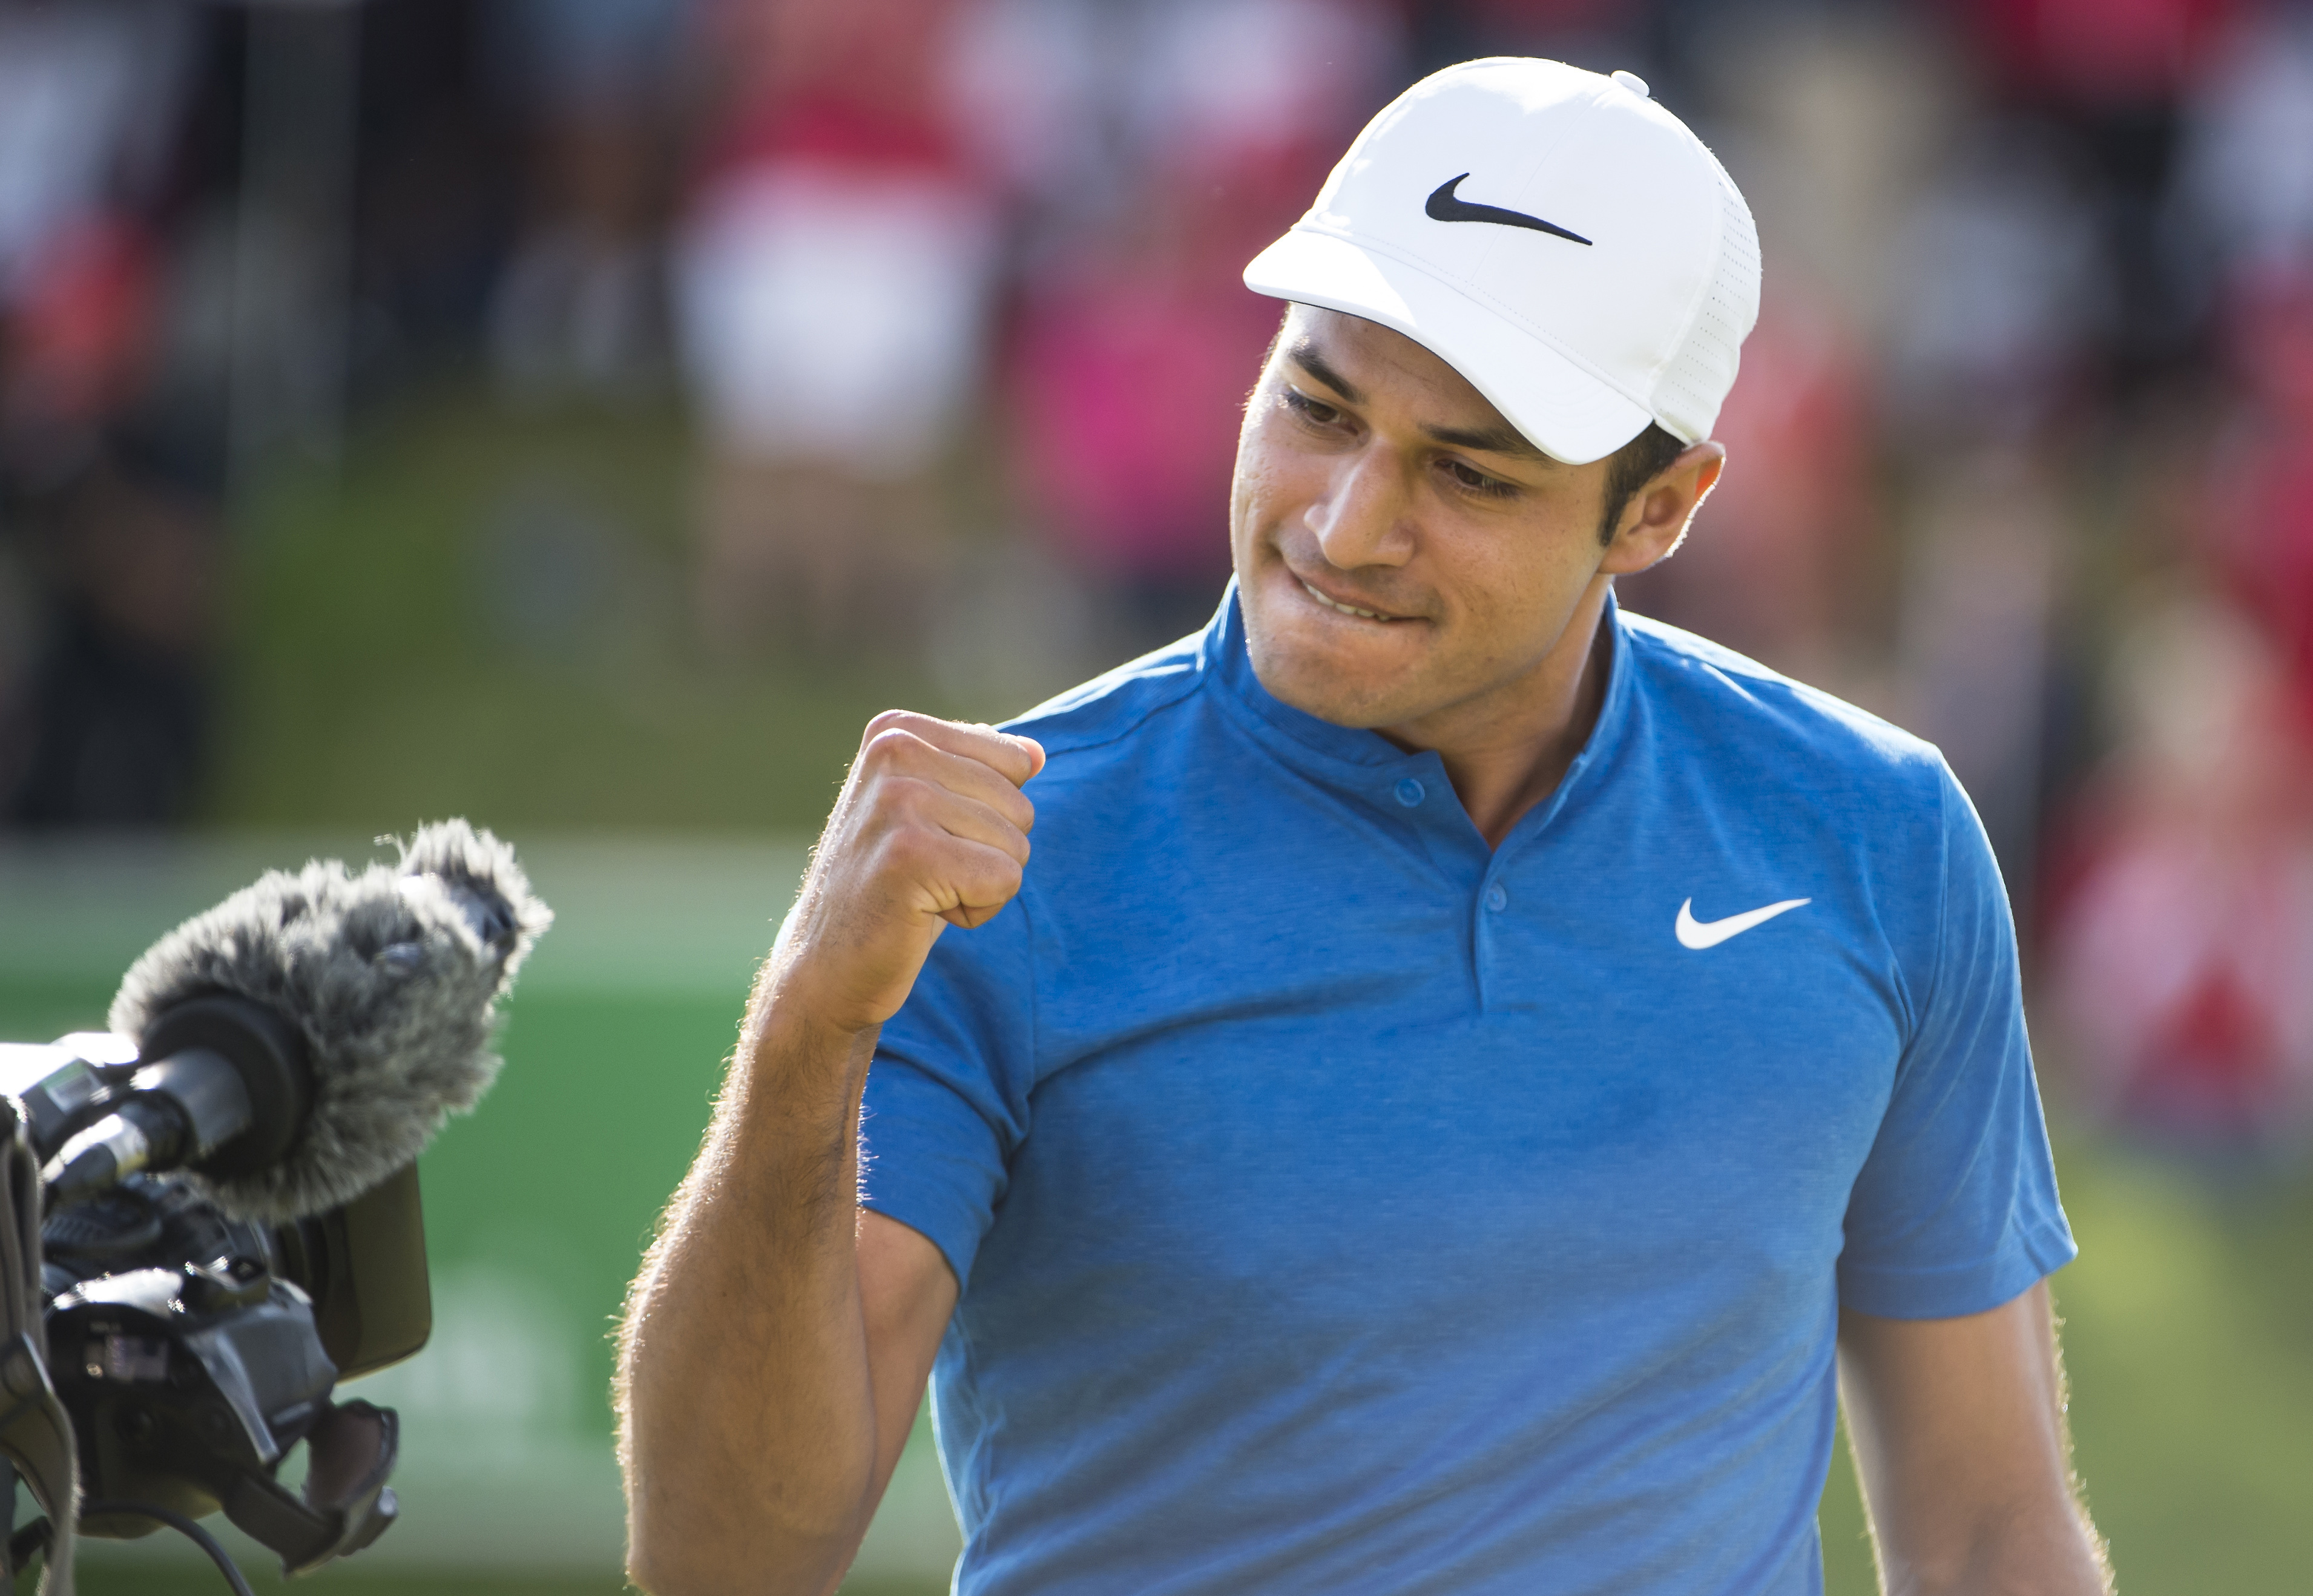 US golfer Julian Suri reacts to his win in the final round of the Made in Denmark 2017 golf tour at the Himmerland golf course in Jutland, Denmark, Sunday, Aug. 27, 2017. The match is a part of the European Golf Tour. (Rene Schuetze/ ritzau via AP)